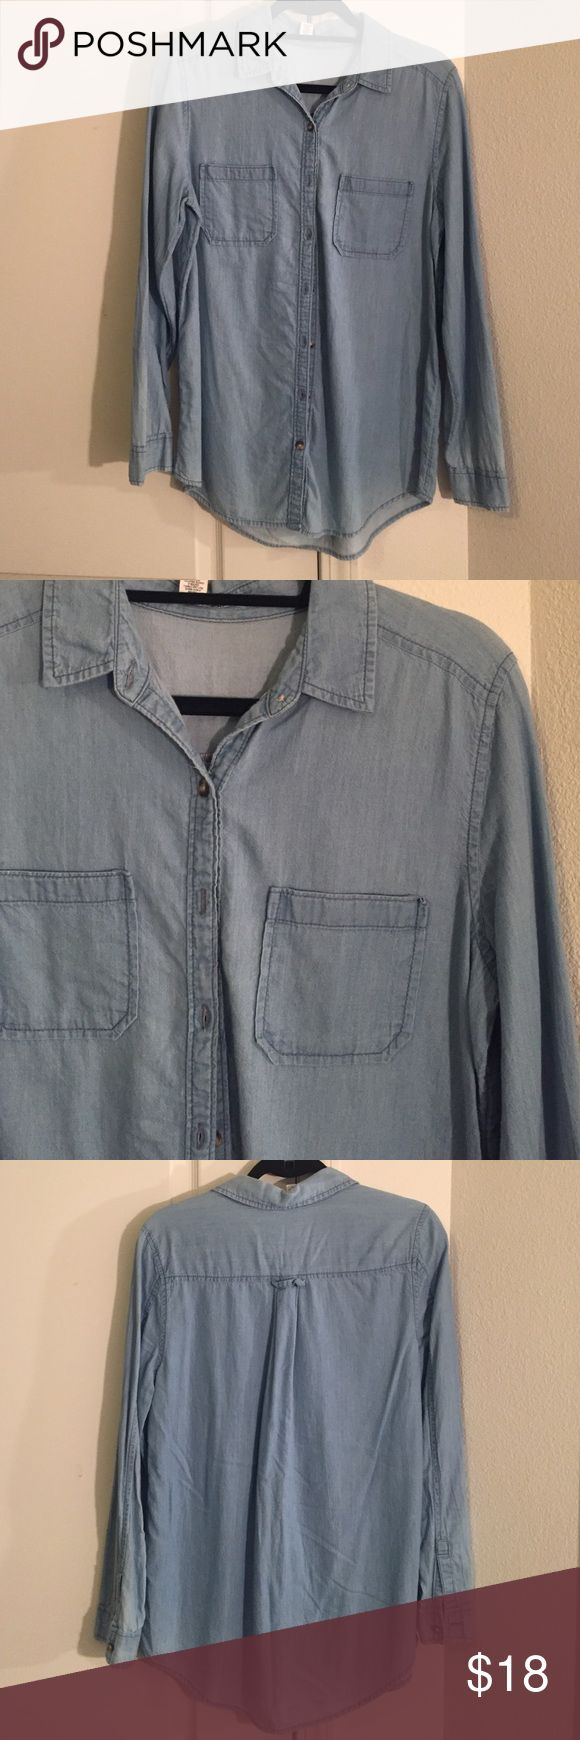 Denim long sleeved top Worn twice. Cute flowy denim top. Bought at Nordstrom. Would look adorable with white pants! Sleeve cuffs roll up and button! abound Tops Tees - Long Sleeve